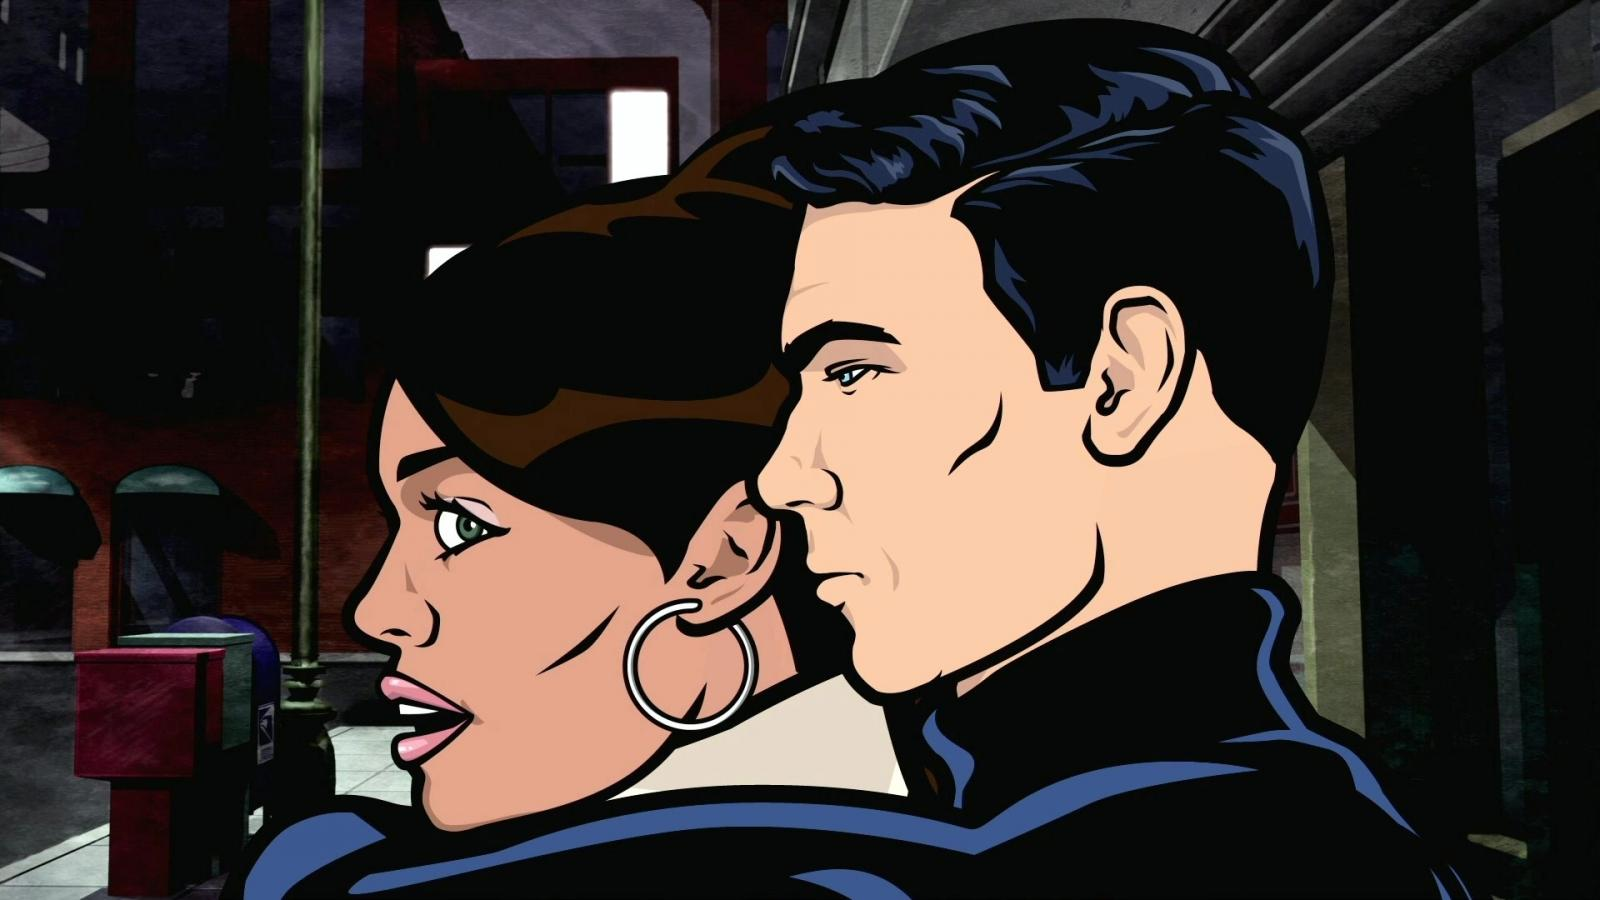 Sterling archer tv lana kane wallpaper 51769 1600x900